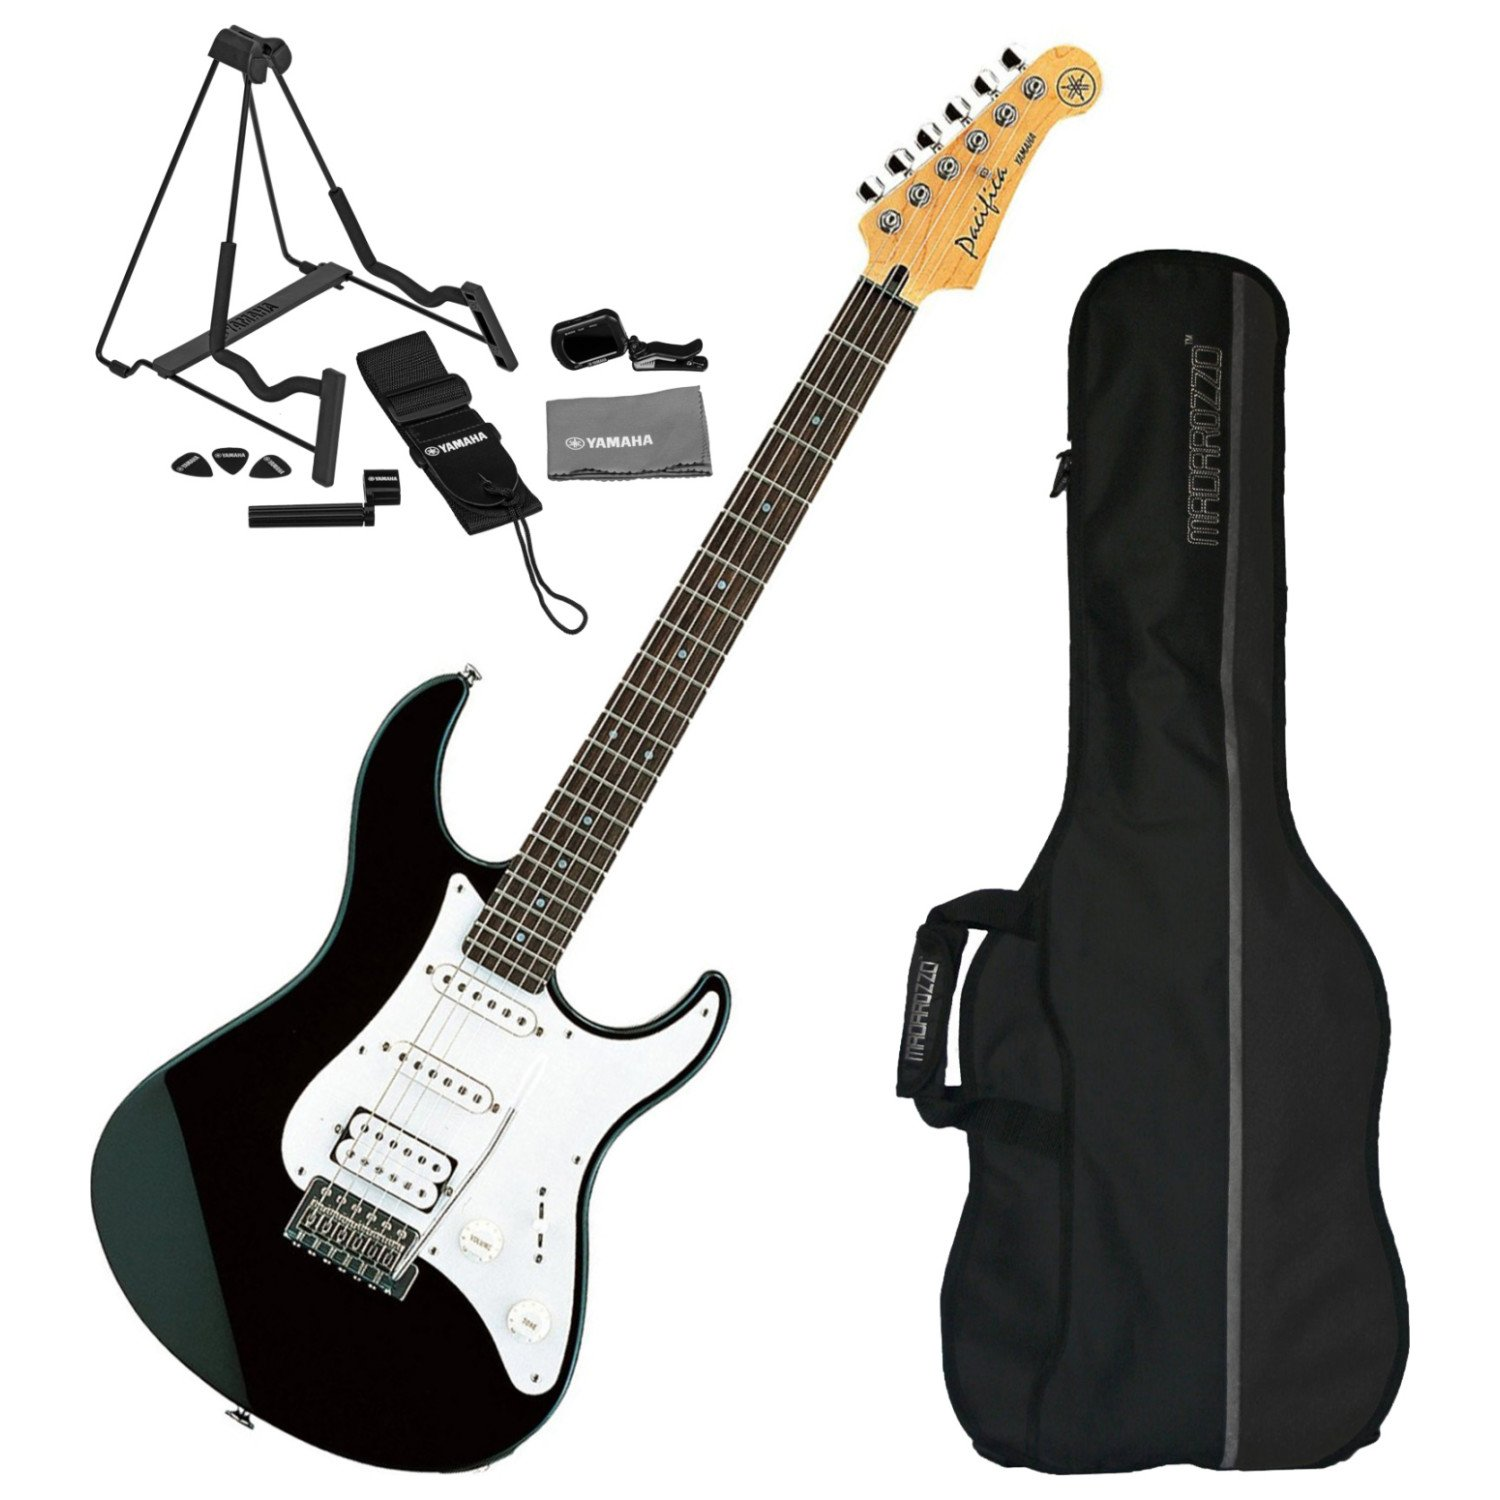 Amazon.com: Yamaha Pacifica PAC112J Black Electric Guitar w/ Gig Bag and Guitar Accessory Pack: Musical Instruments